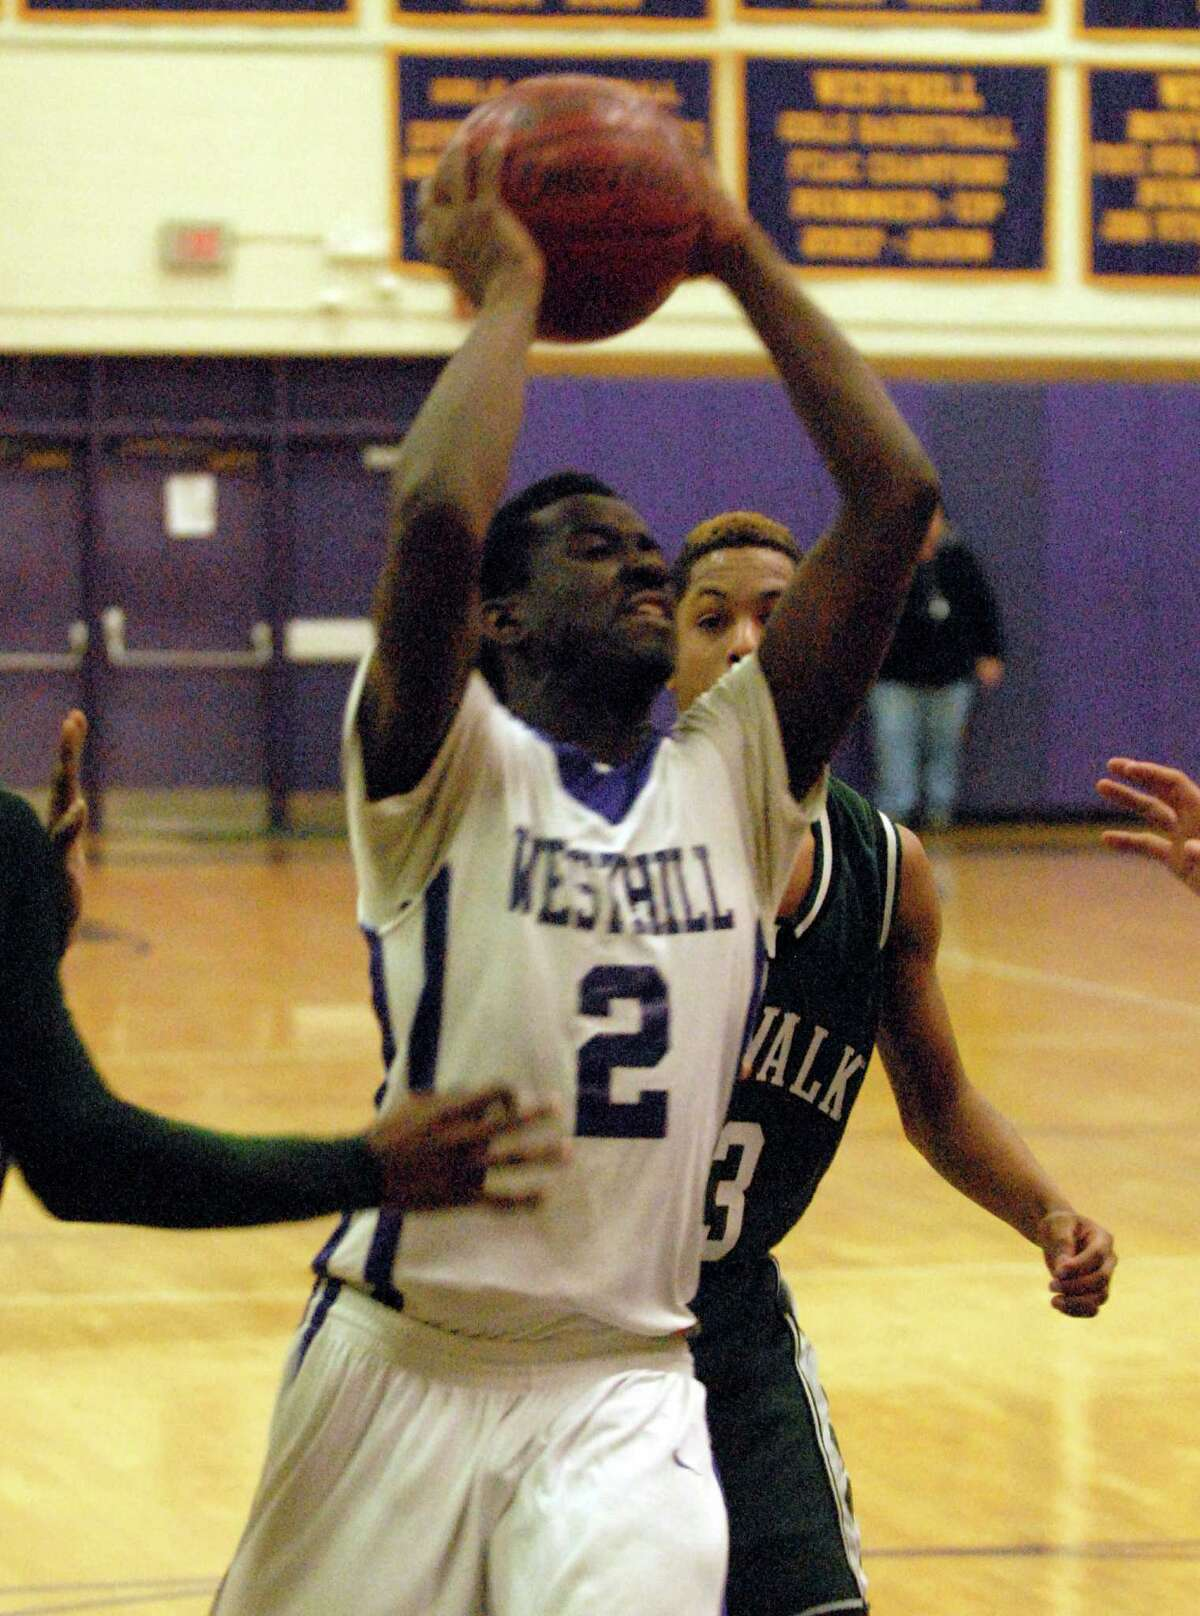 Westhill's Terrell Middleton in action as Westhill High School hosts Norwalk in a boys basketball game in Stamford, Conn., Jan. 8. 2013.